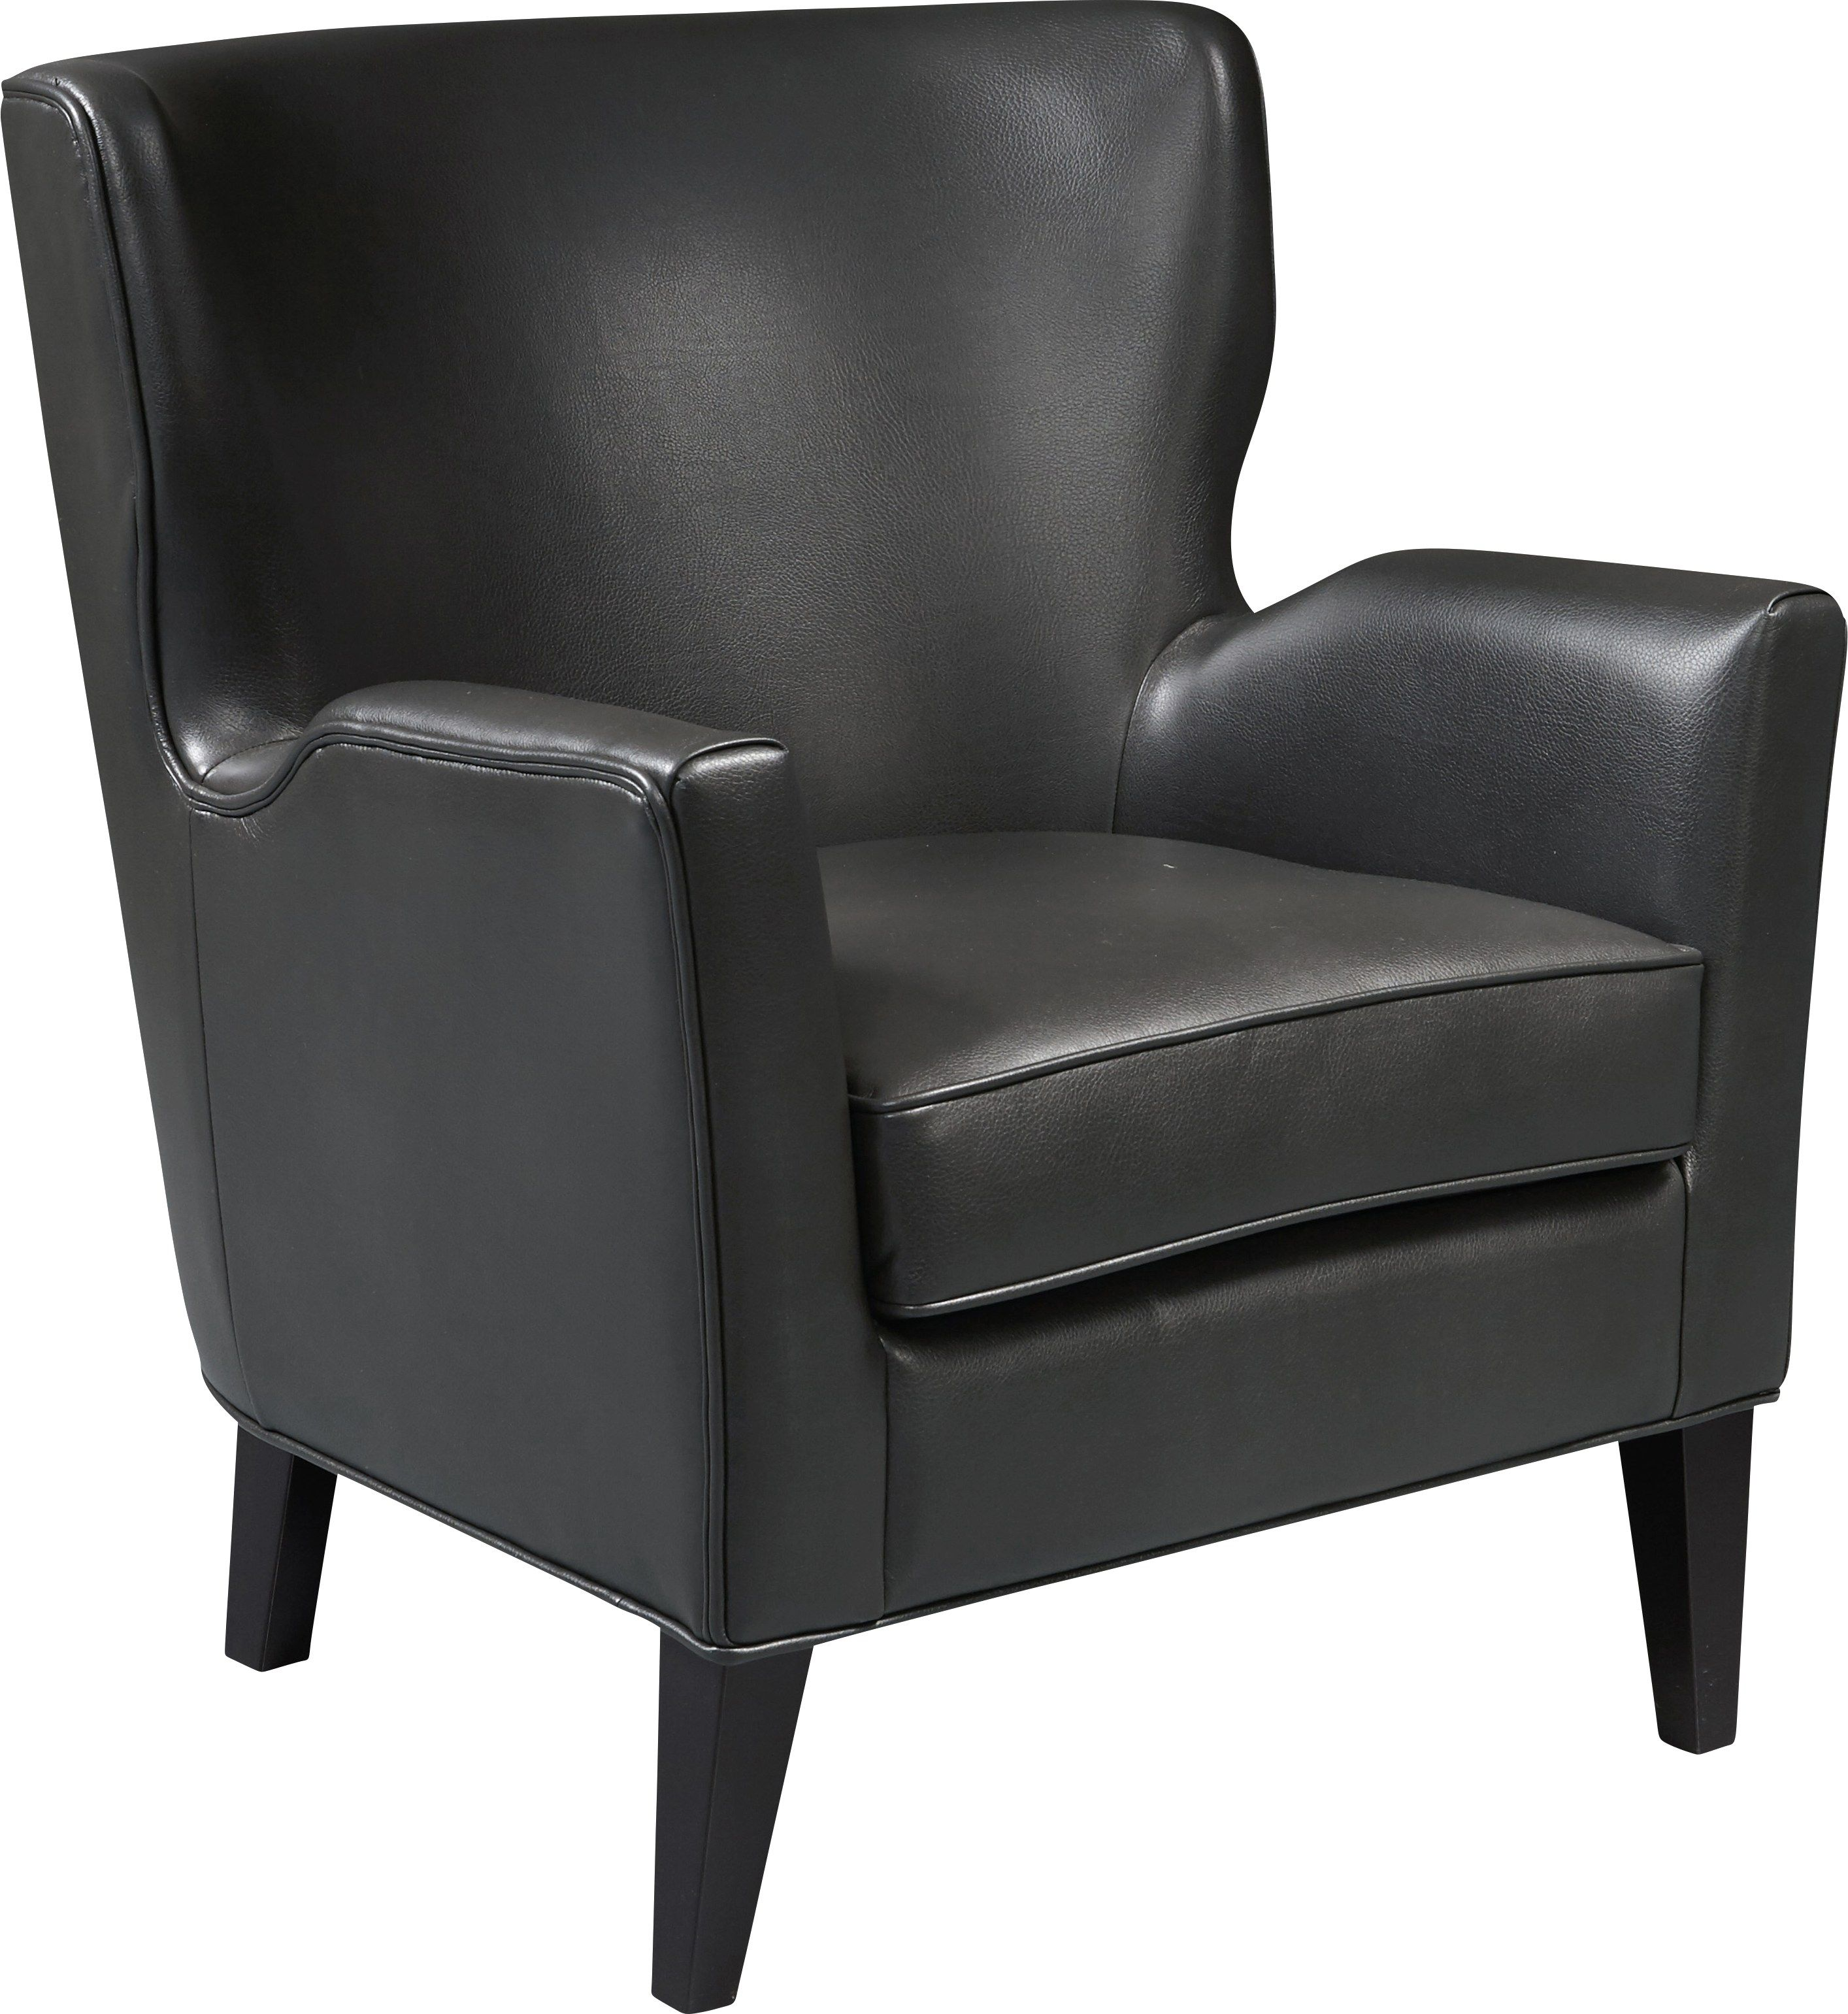 Best Haberfield Charcoal Accent Chair Charcoal Accent Chair 400 x 300